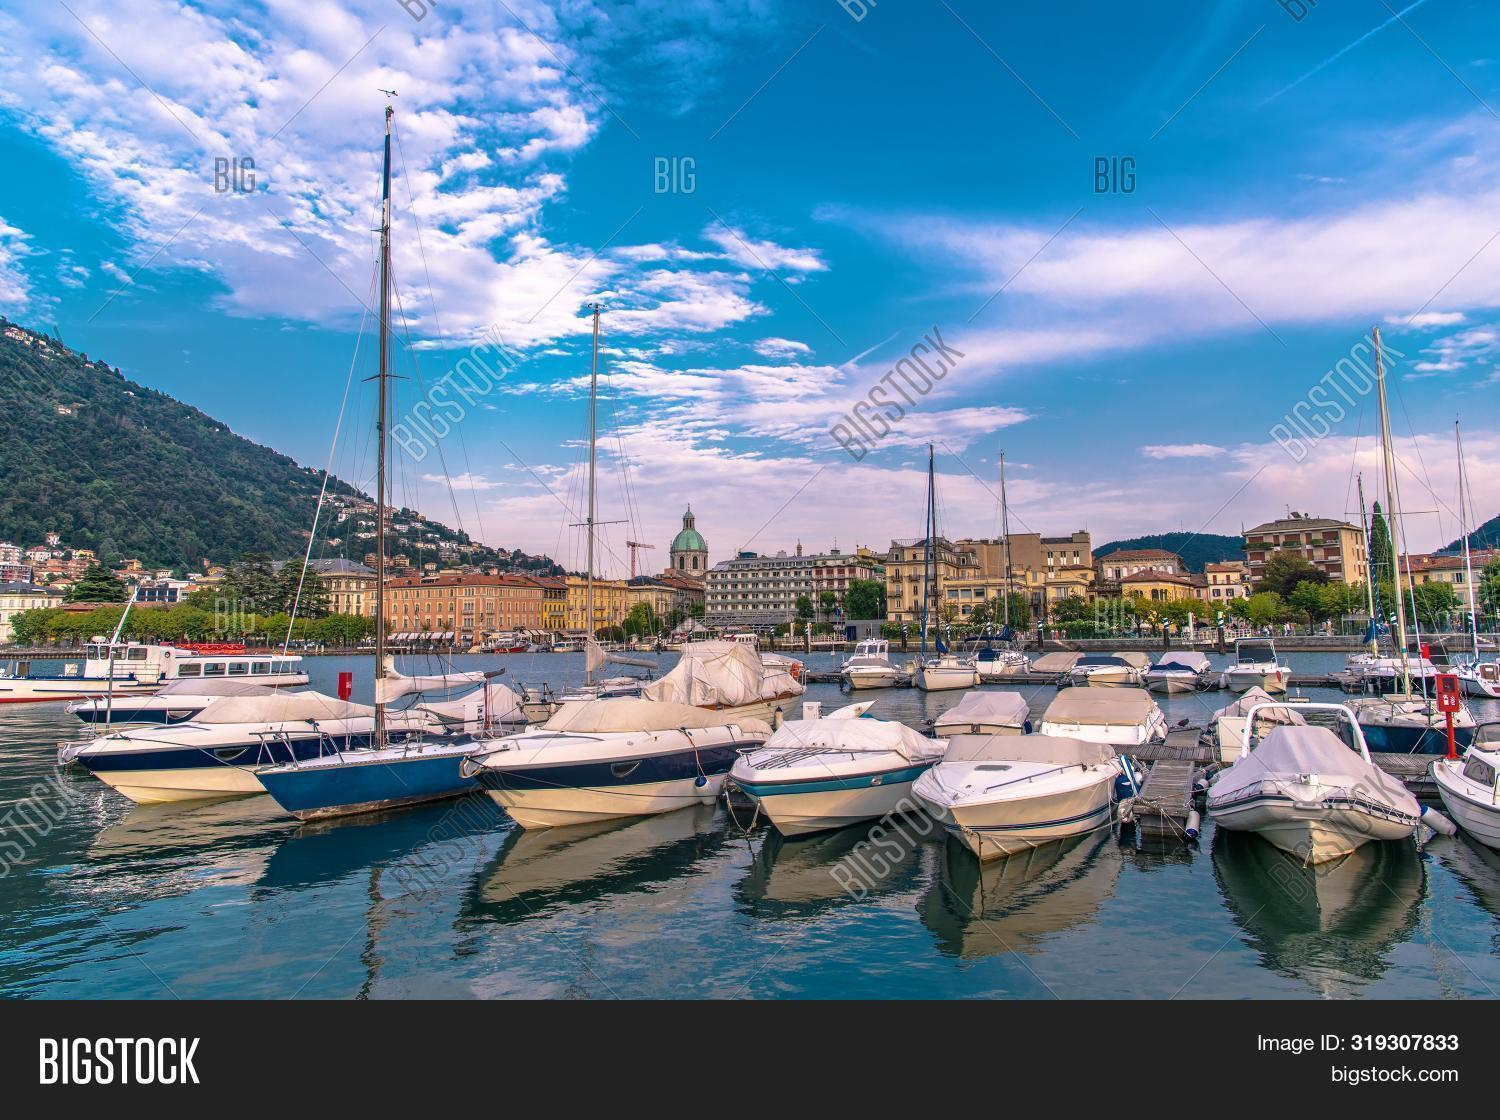 City Of Como In Northern Italy